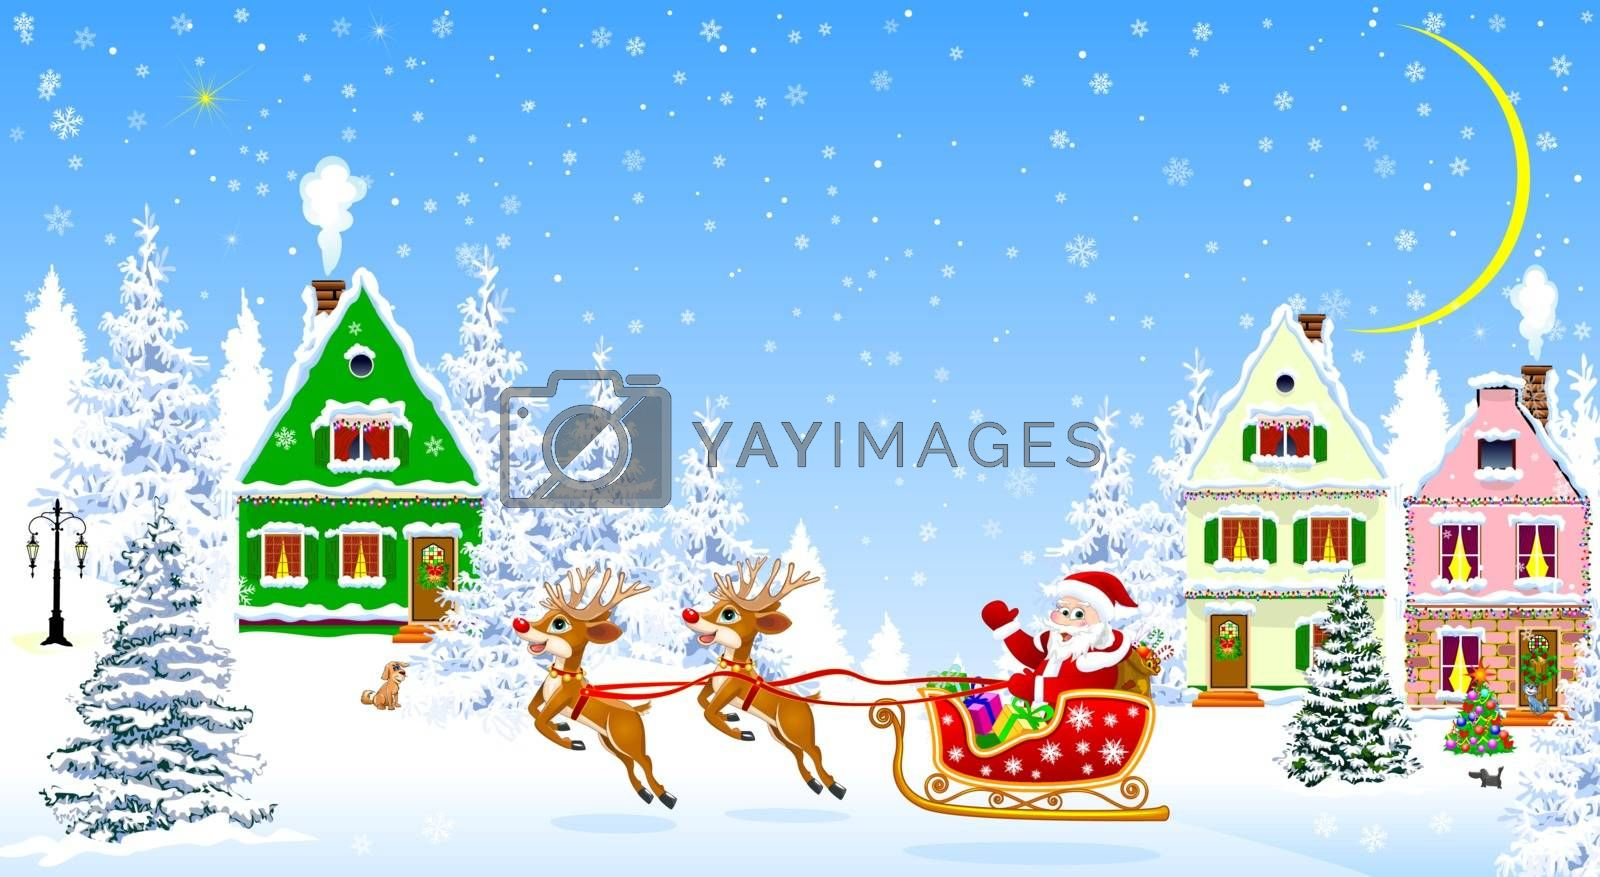 Santa Claus with presents on a sleigh. Houses, snow, snowy firs. Snowflakes. Winter night, the moon.